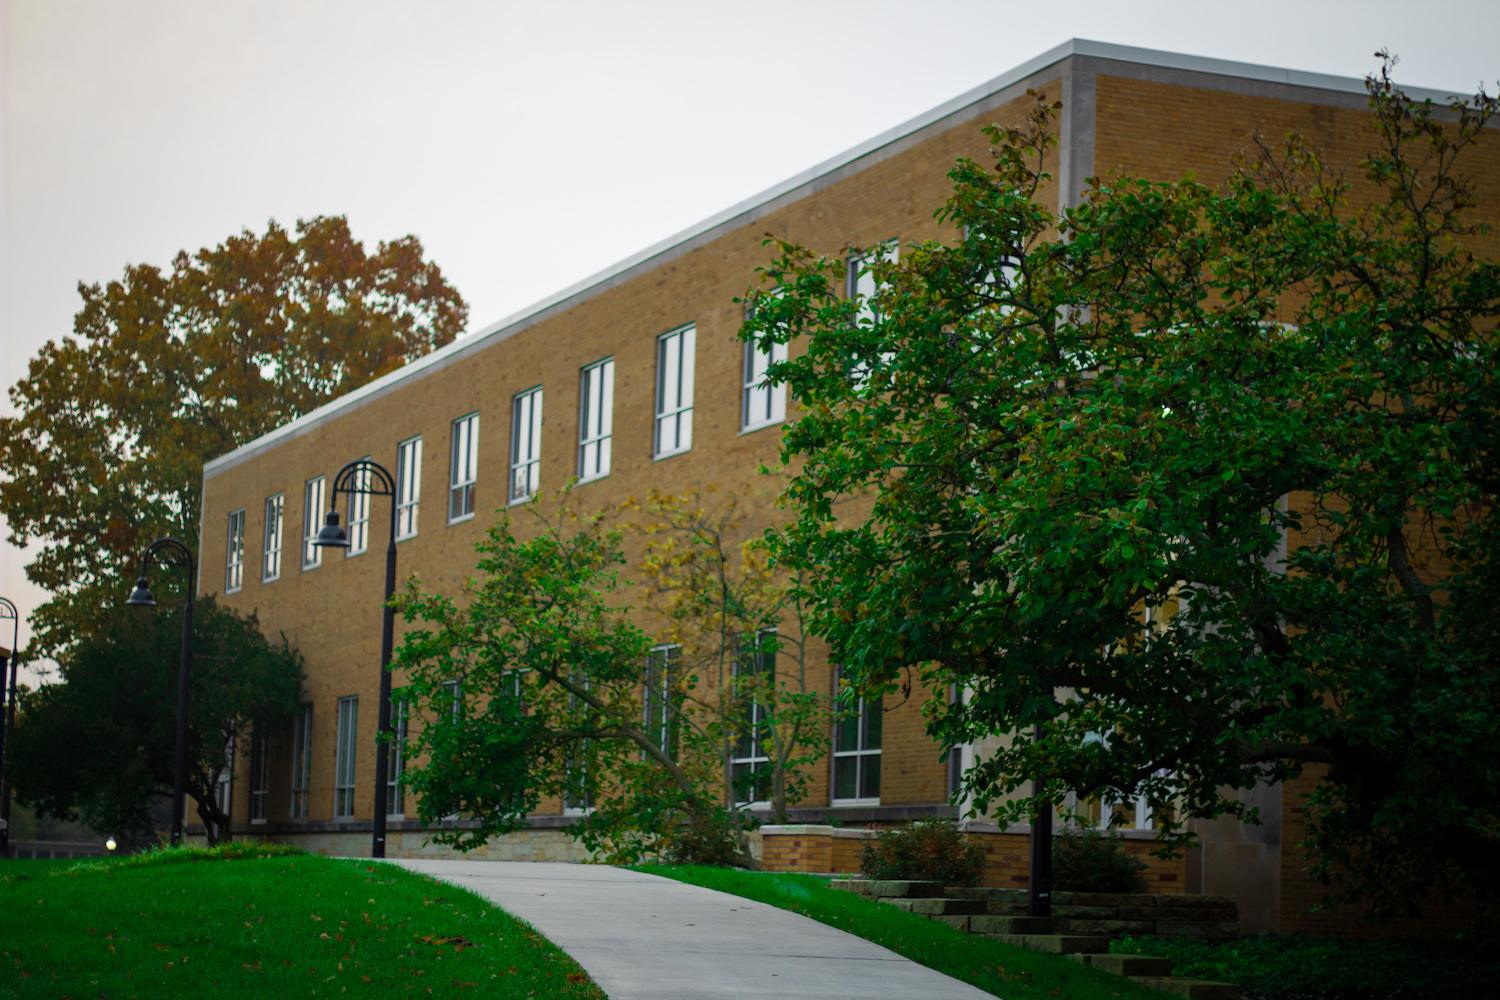 Kent State Glauser School of Music Building